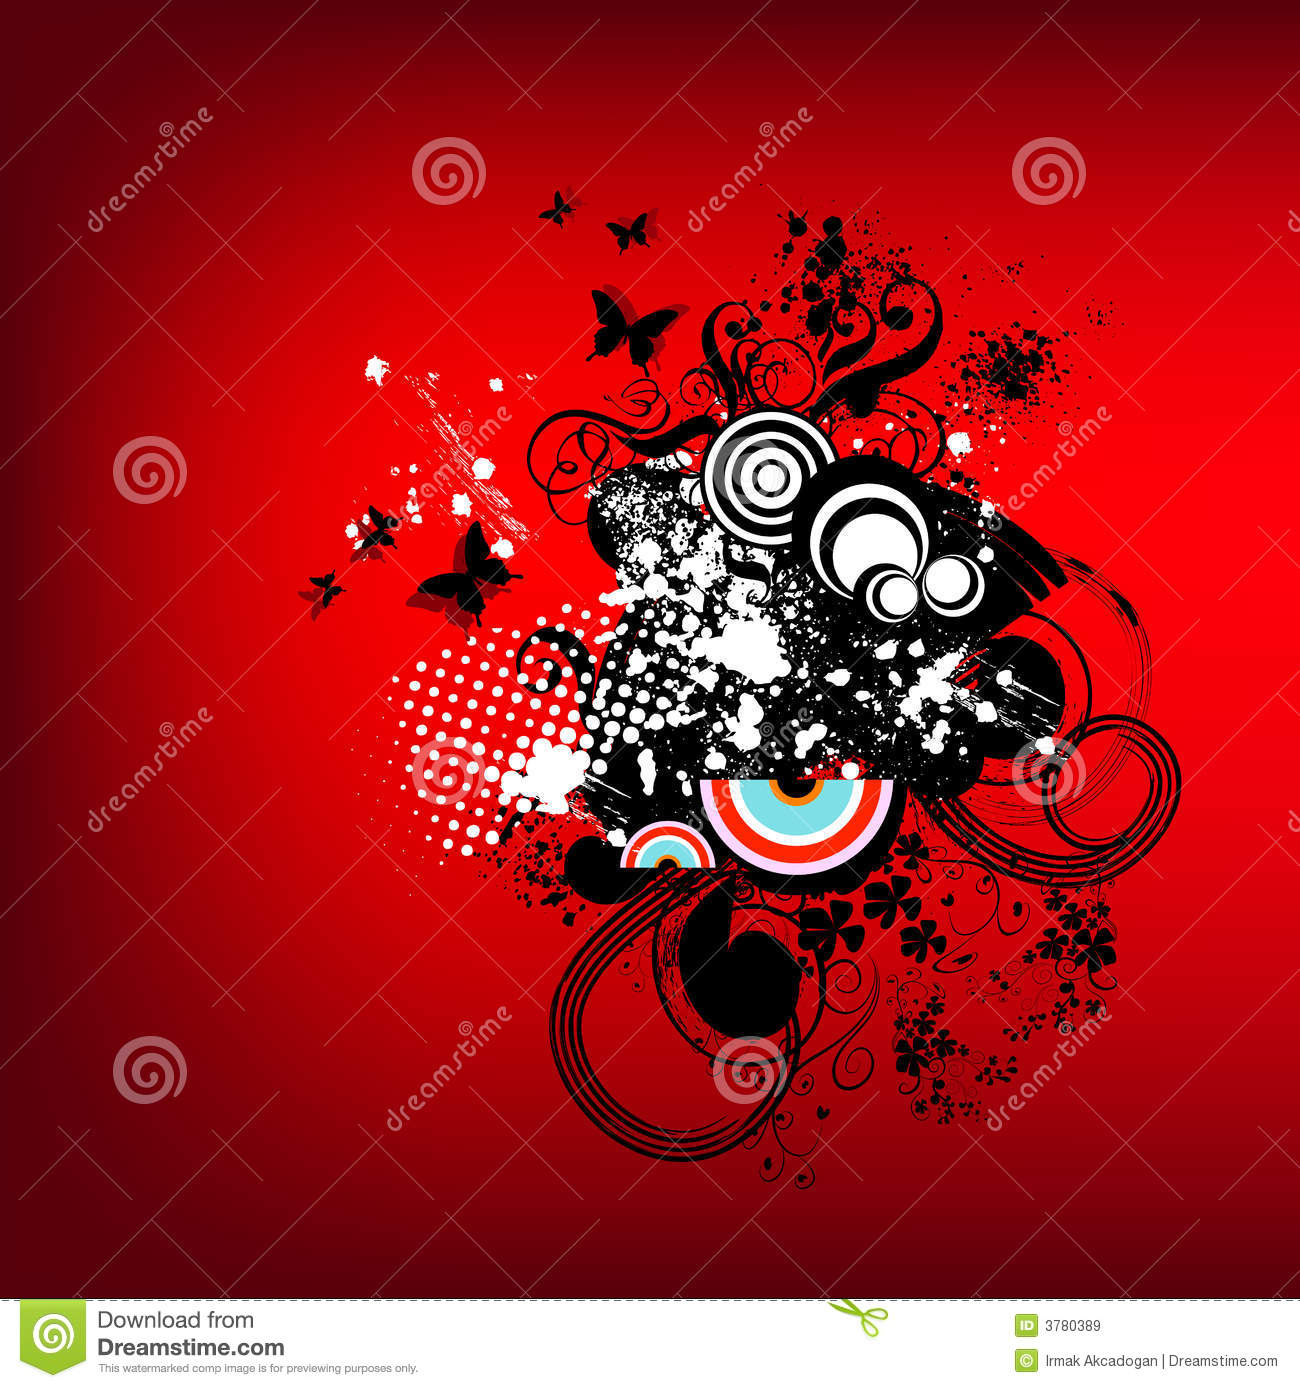 Funky Red Retro Graphic Royalty Free Stock Images - Image ...